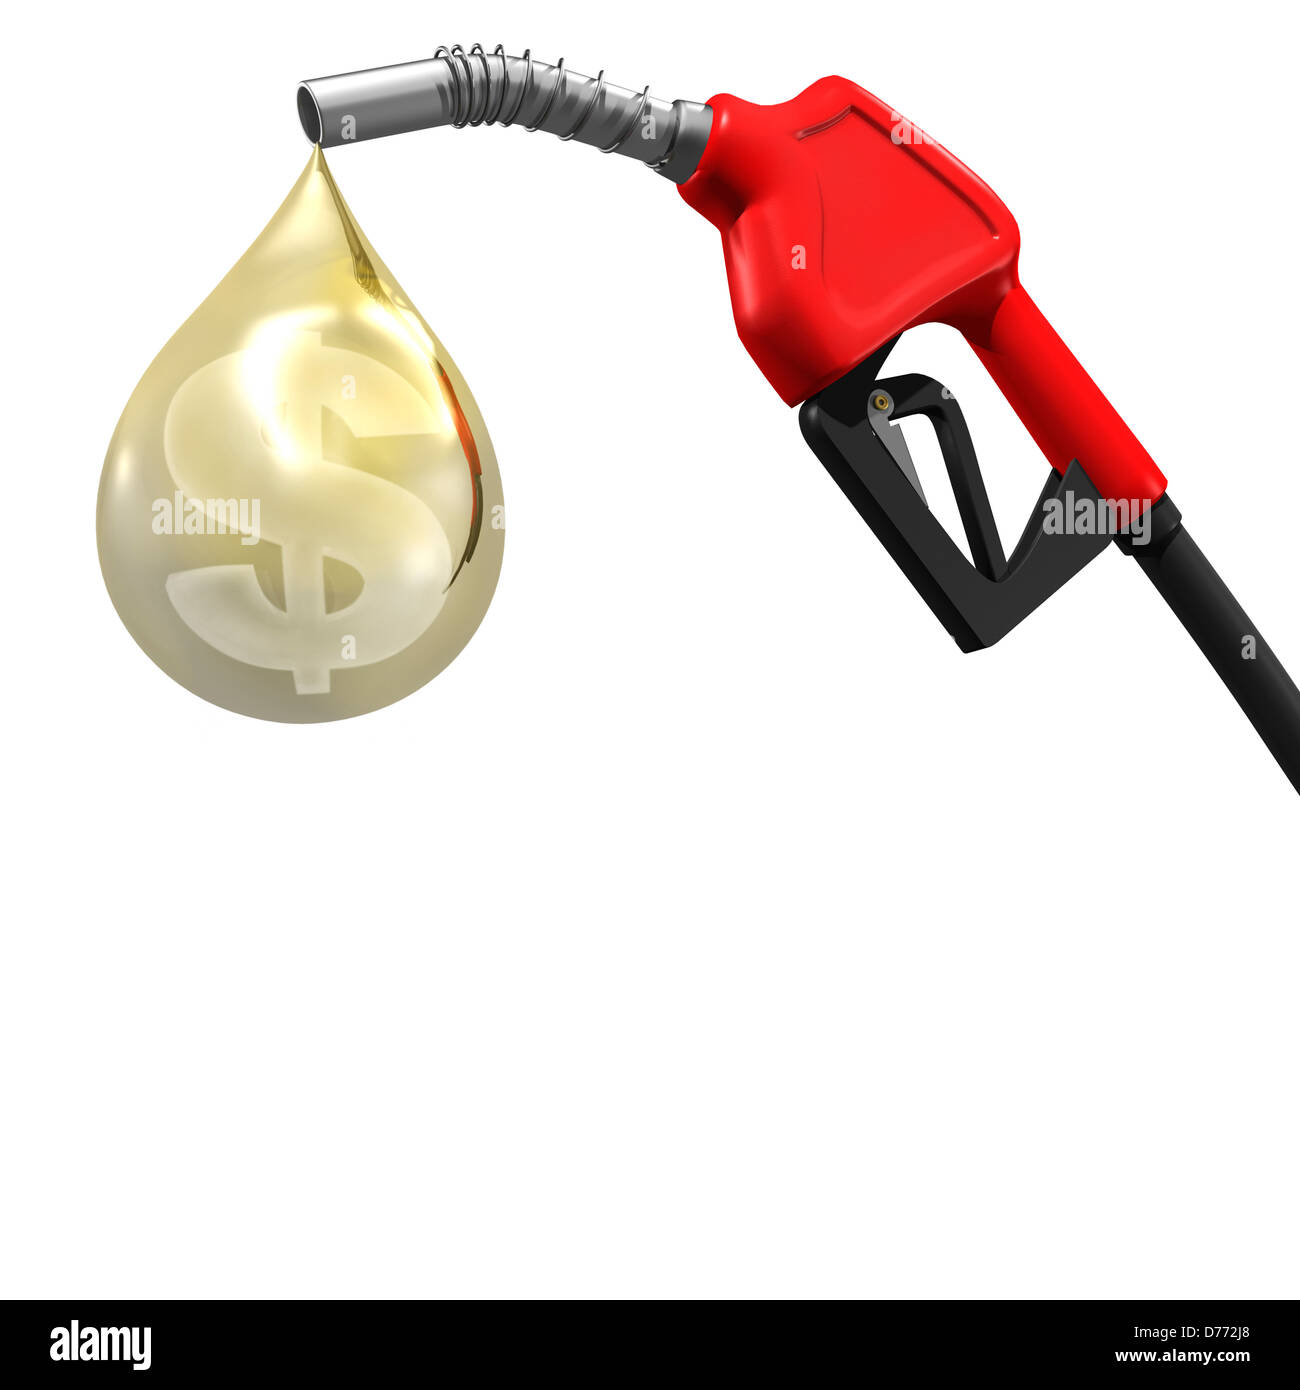 Gas station pump nozzle with a dollar symbol insed a drop of gasoline. Price of fuel concept isolated on white background. - Stock Image